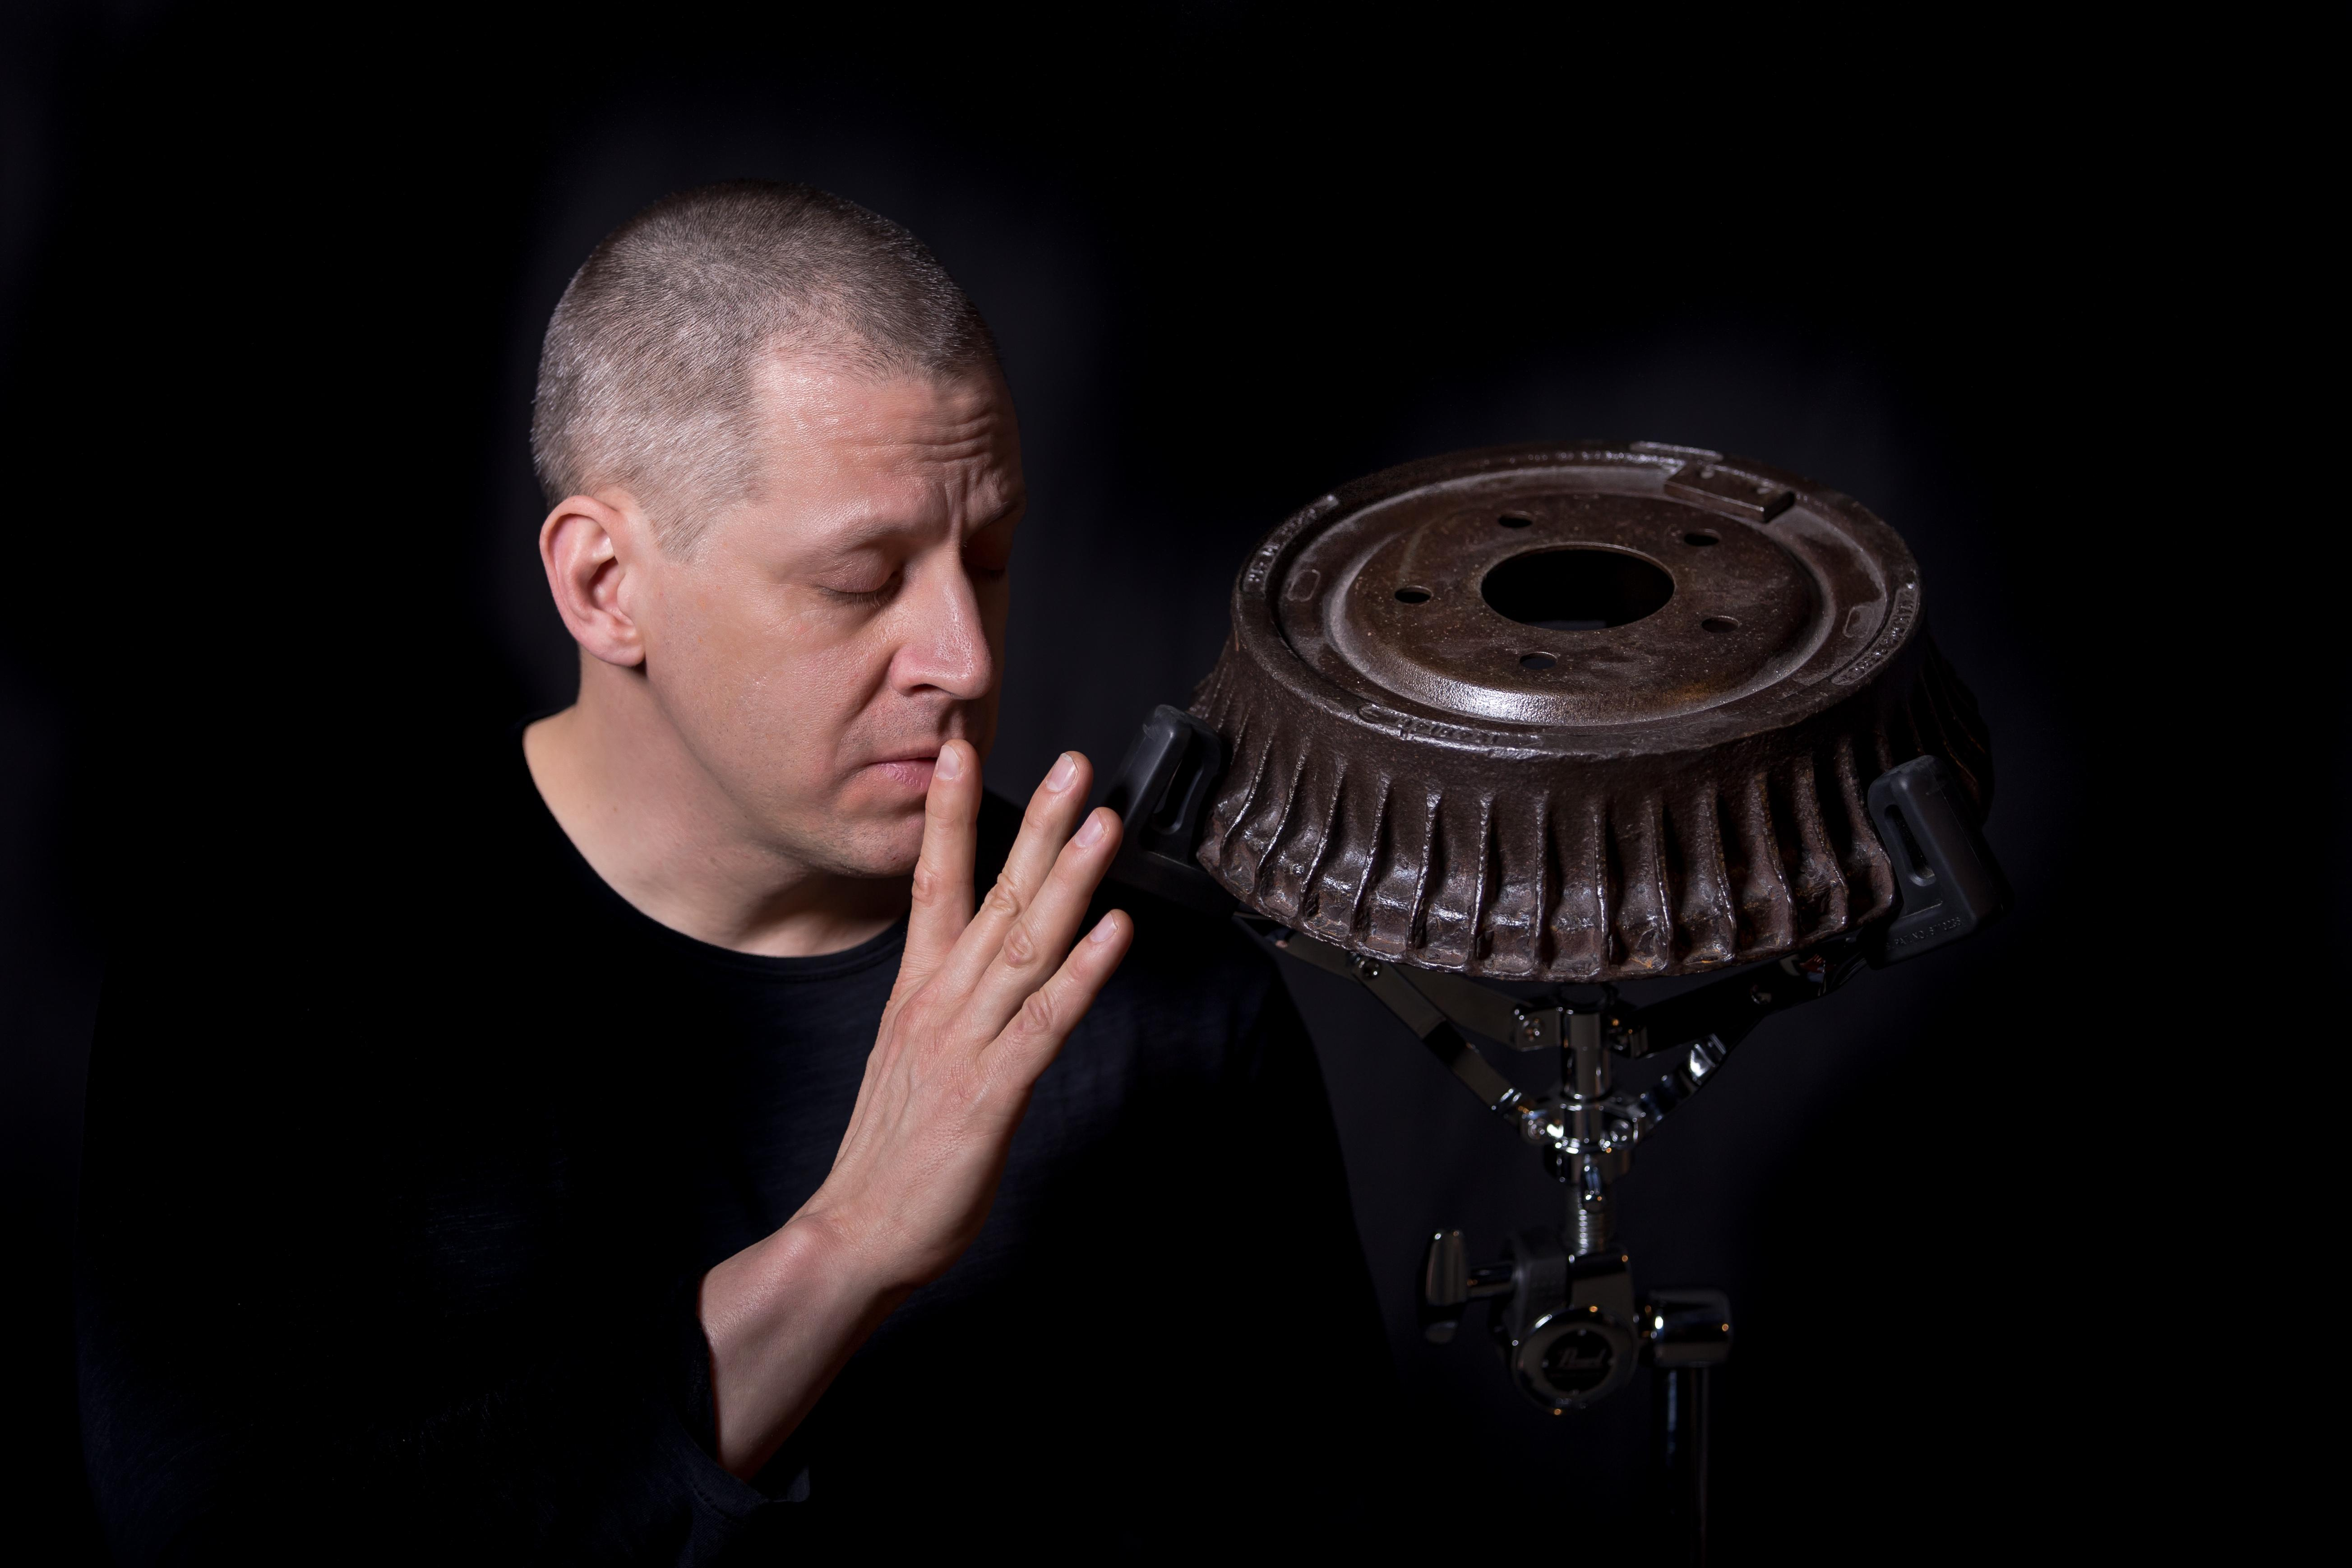 A pale-skinned middle aged man with closed eyes raises his fingers to his lips, turning toward the steel braking drum mounted on a drum stand next to him, against a black background.